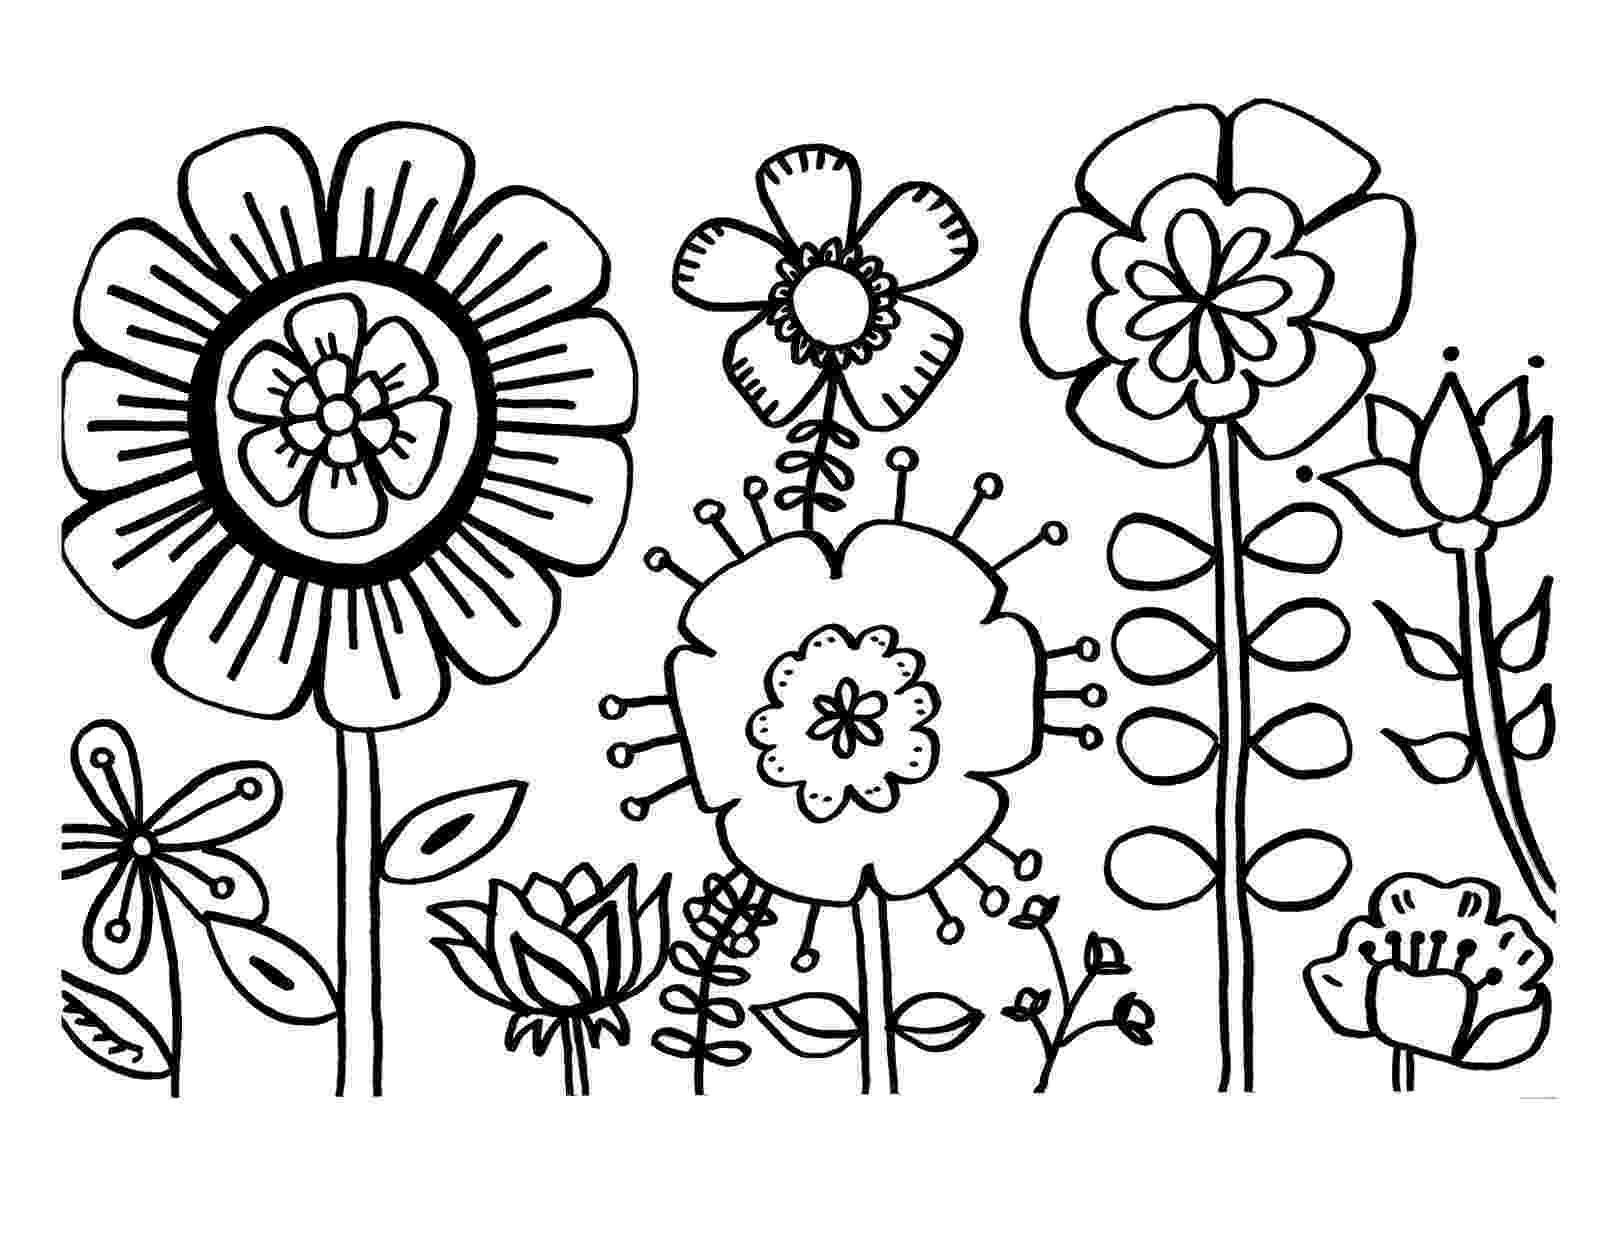 picture of flower for colouring free printable flower coloring pages for kids best flower of for colouring picture